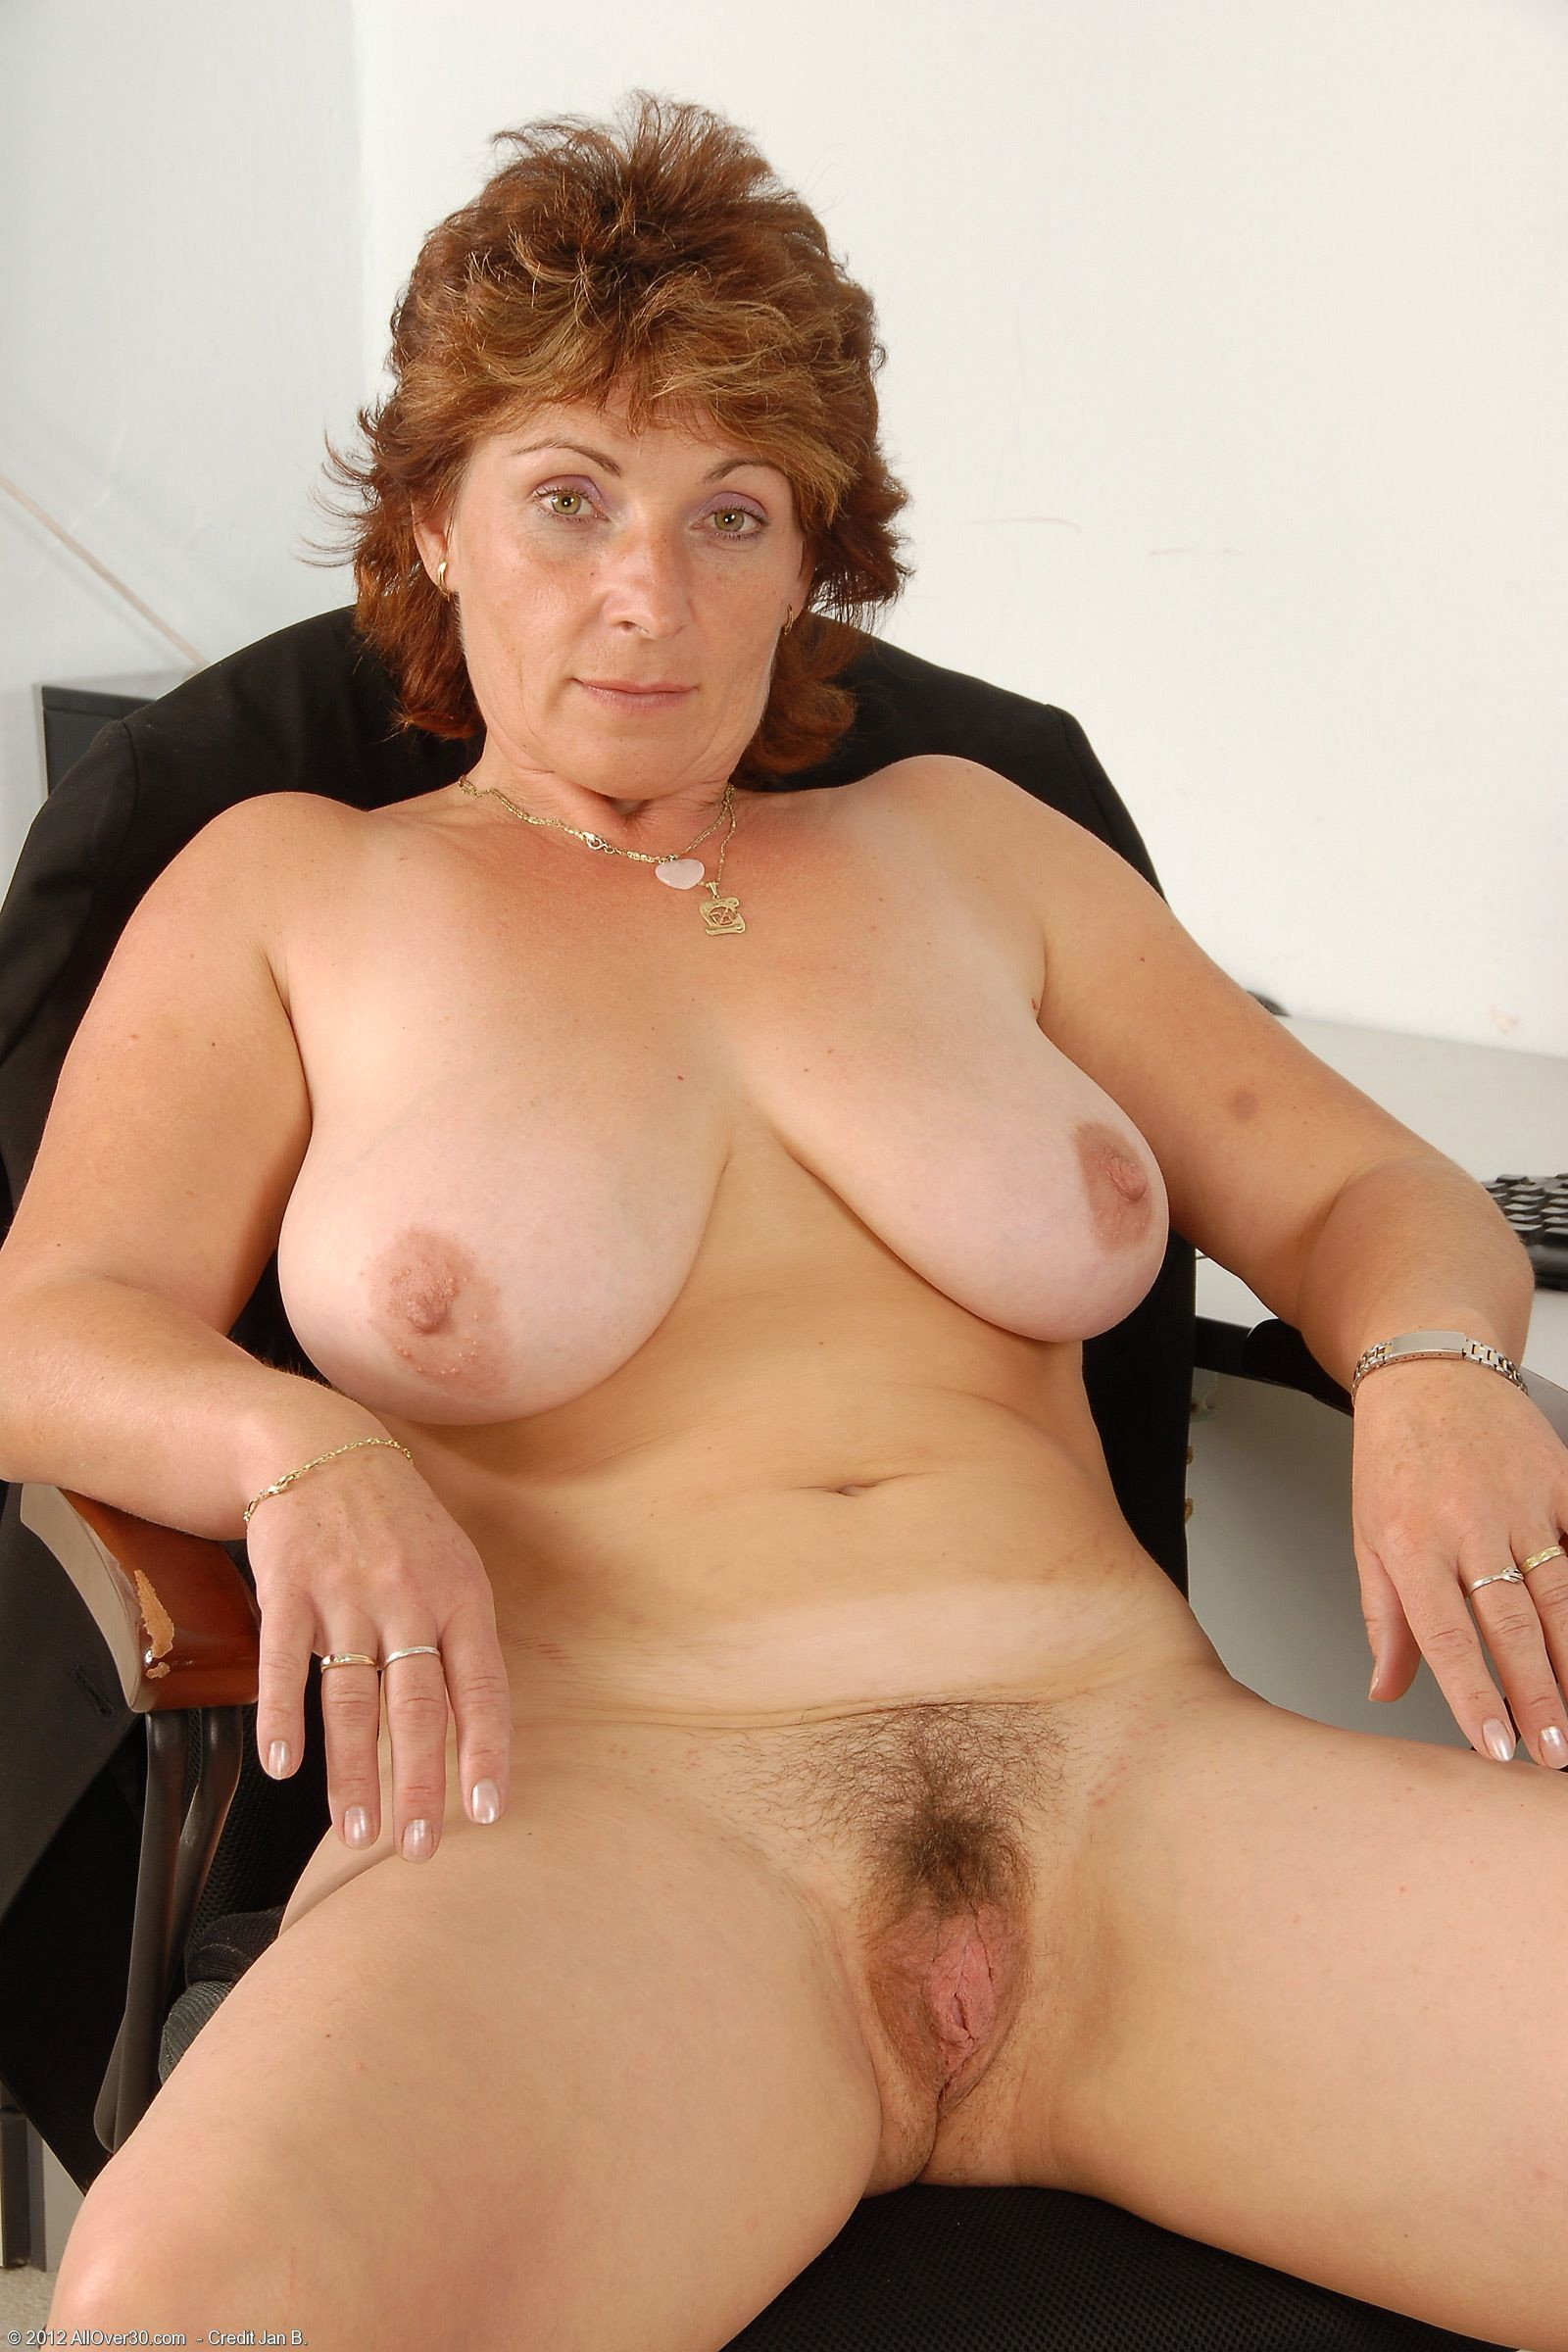 Agree, your busty milfs nude